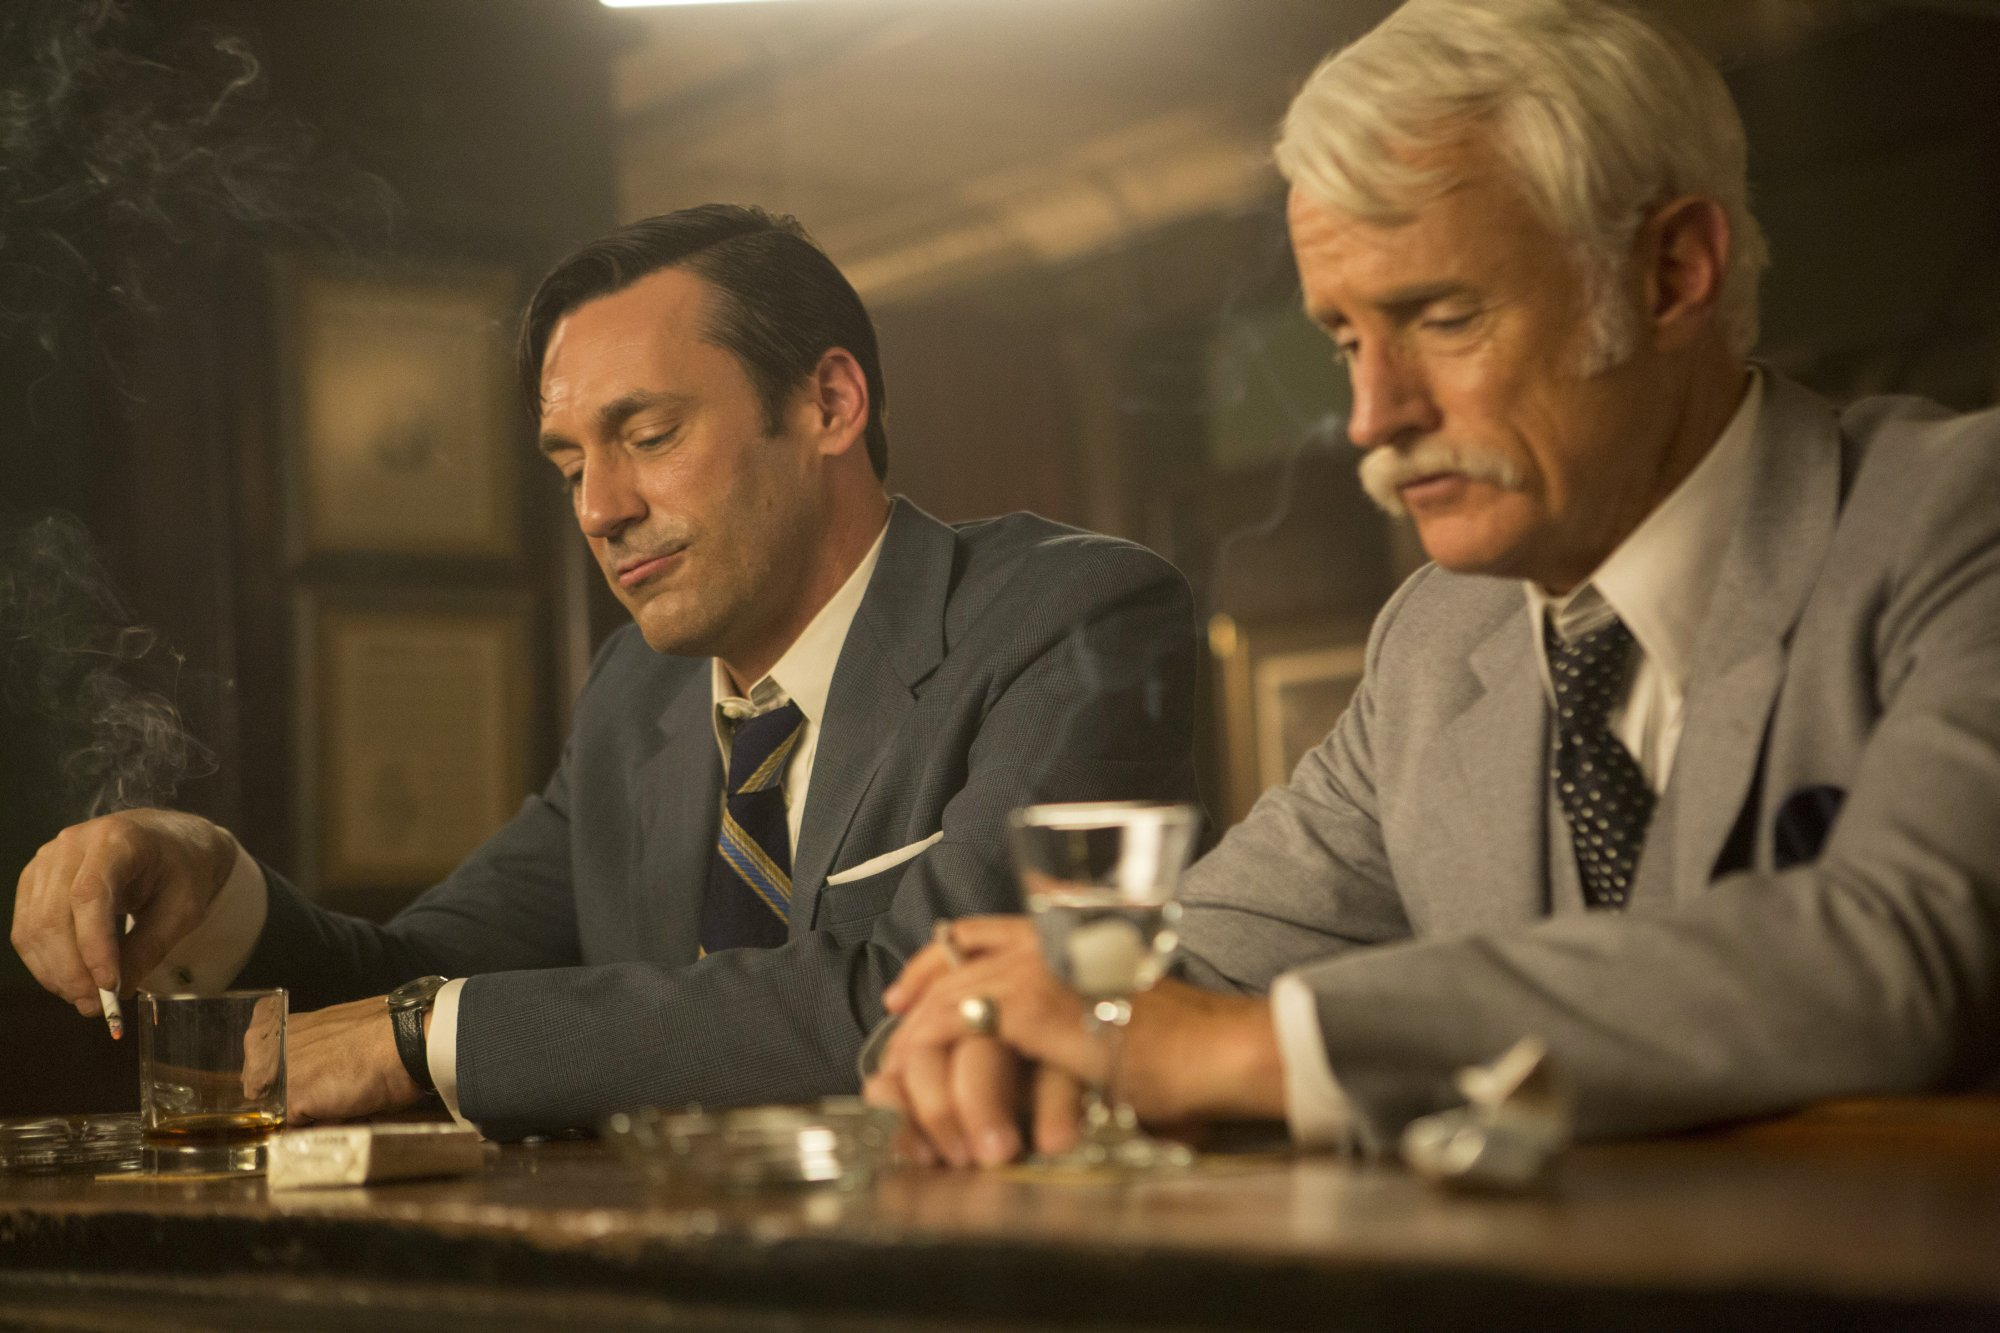 Jon Hamm as Don Draper and John Slattery as Roger Sterling - Mad Men _ Season 7B, Episode 11 - Photo Credit: Justin Mintz/AMC